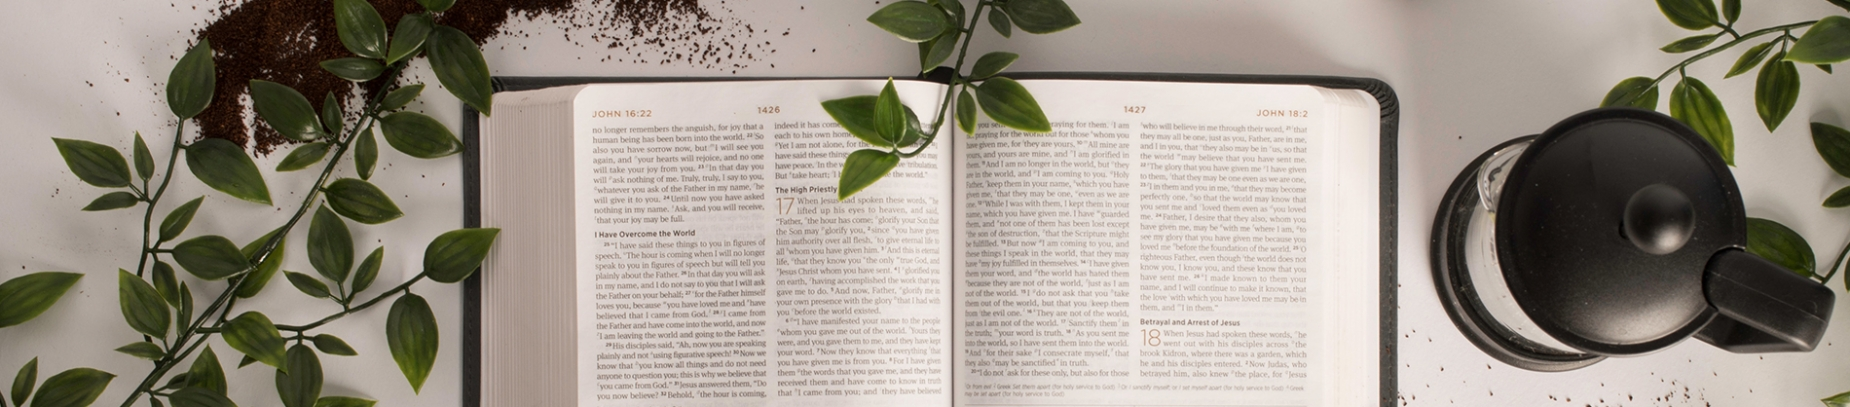 Open Bible with plants, a coffee jug and soil surround it